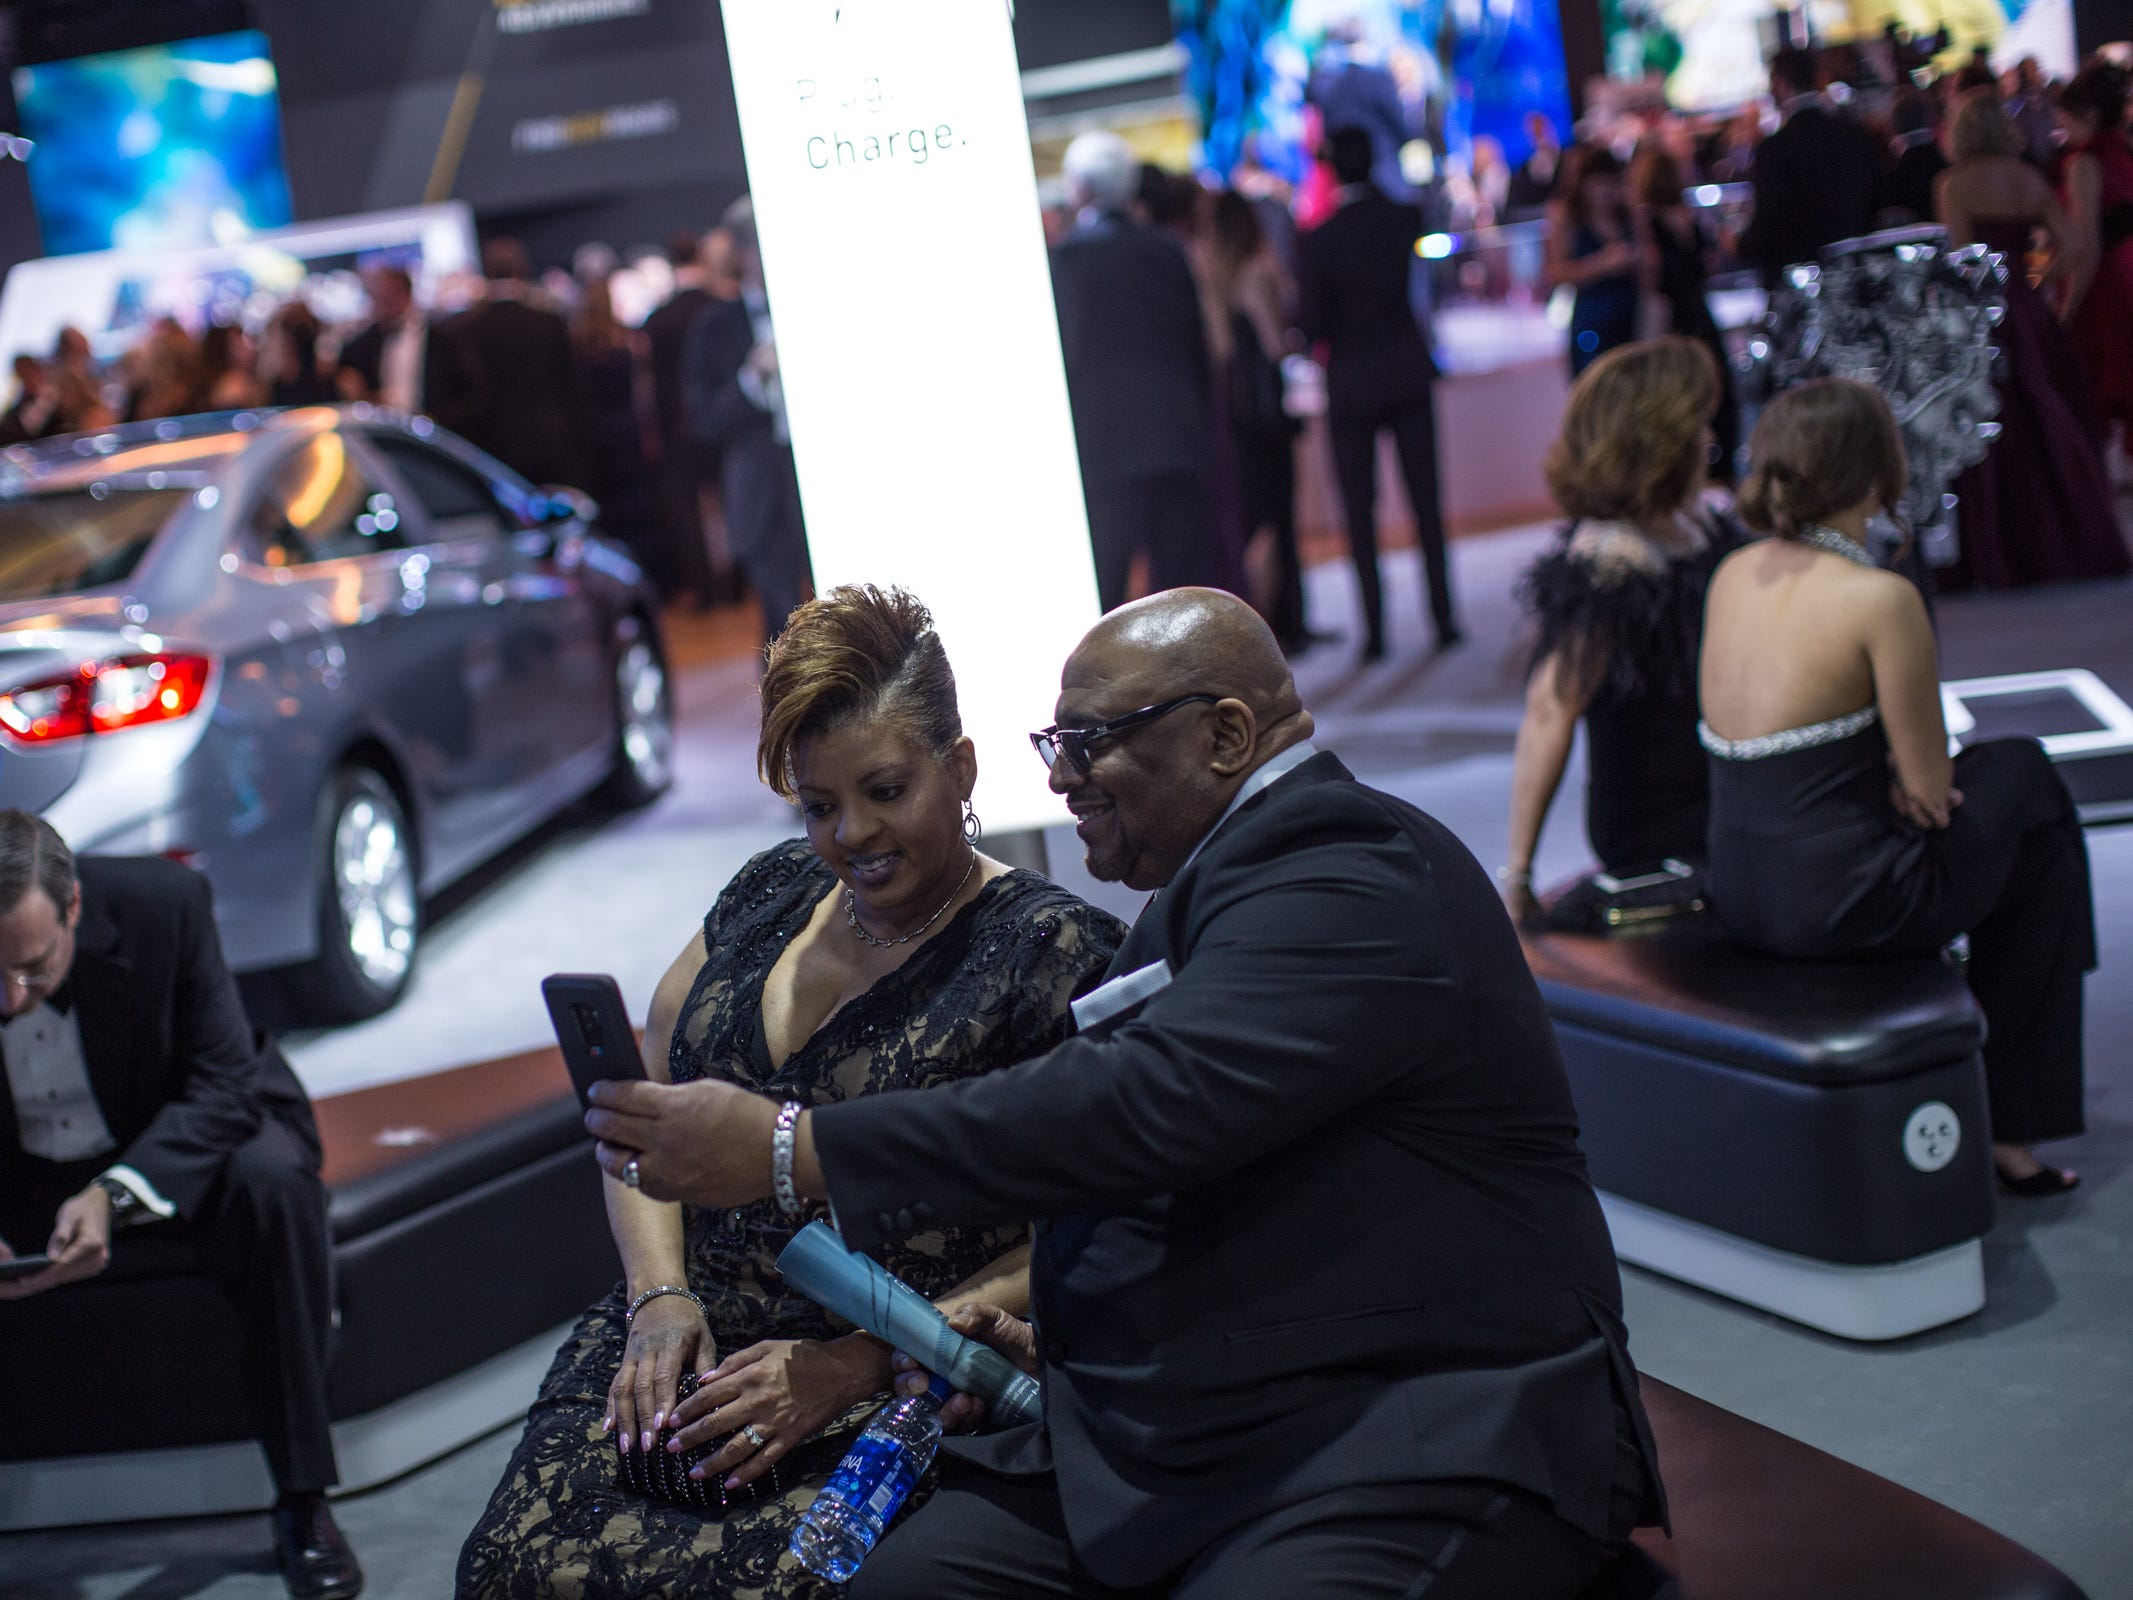 People take a photo while sitting in the Chevrolet area during the 2019 North American International Auto Show Charity Preview at Cobo Center in Detroit on Friday, January 18, 2019.